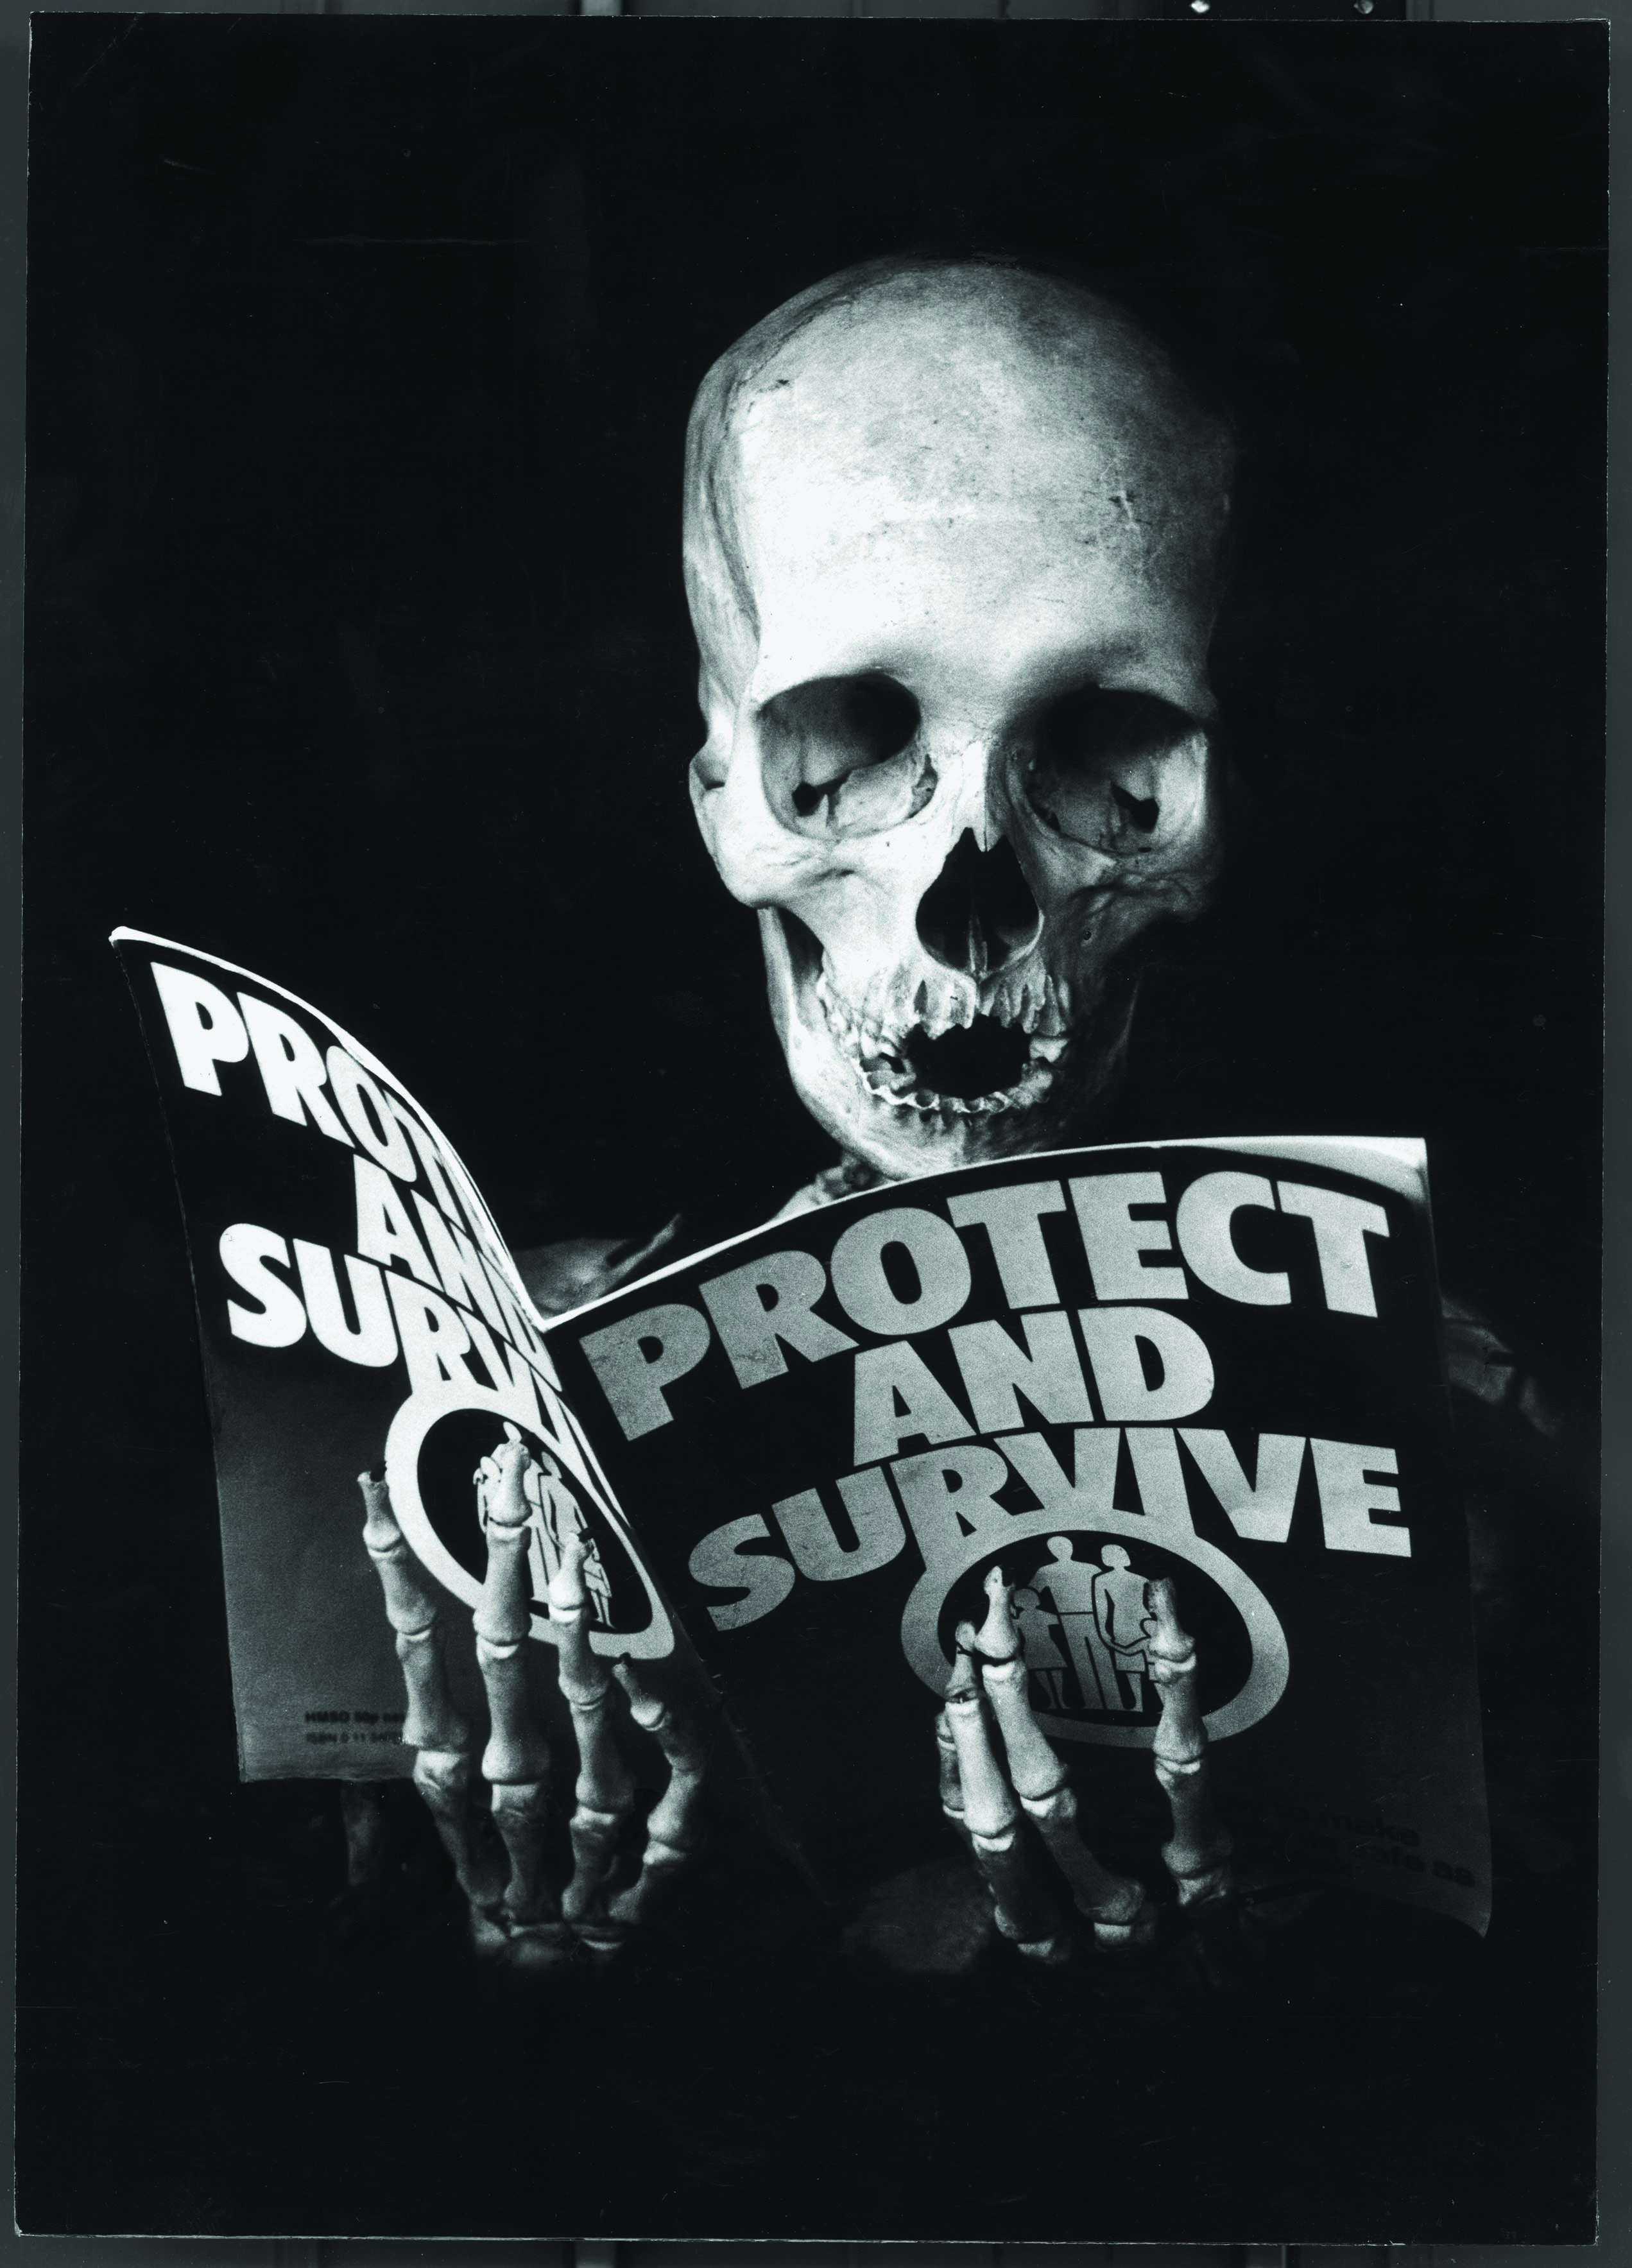 © Peter Kennard 'Protect & Survive'